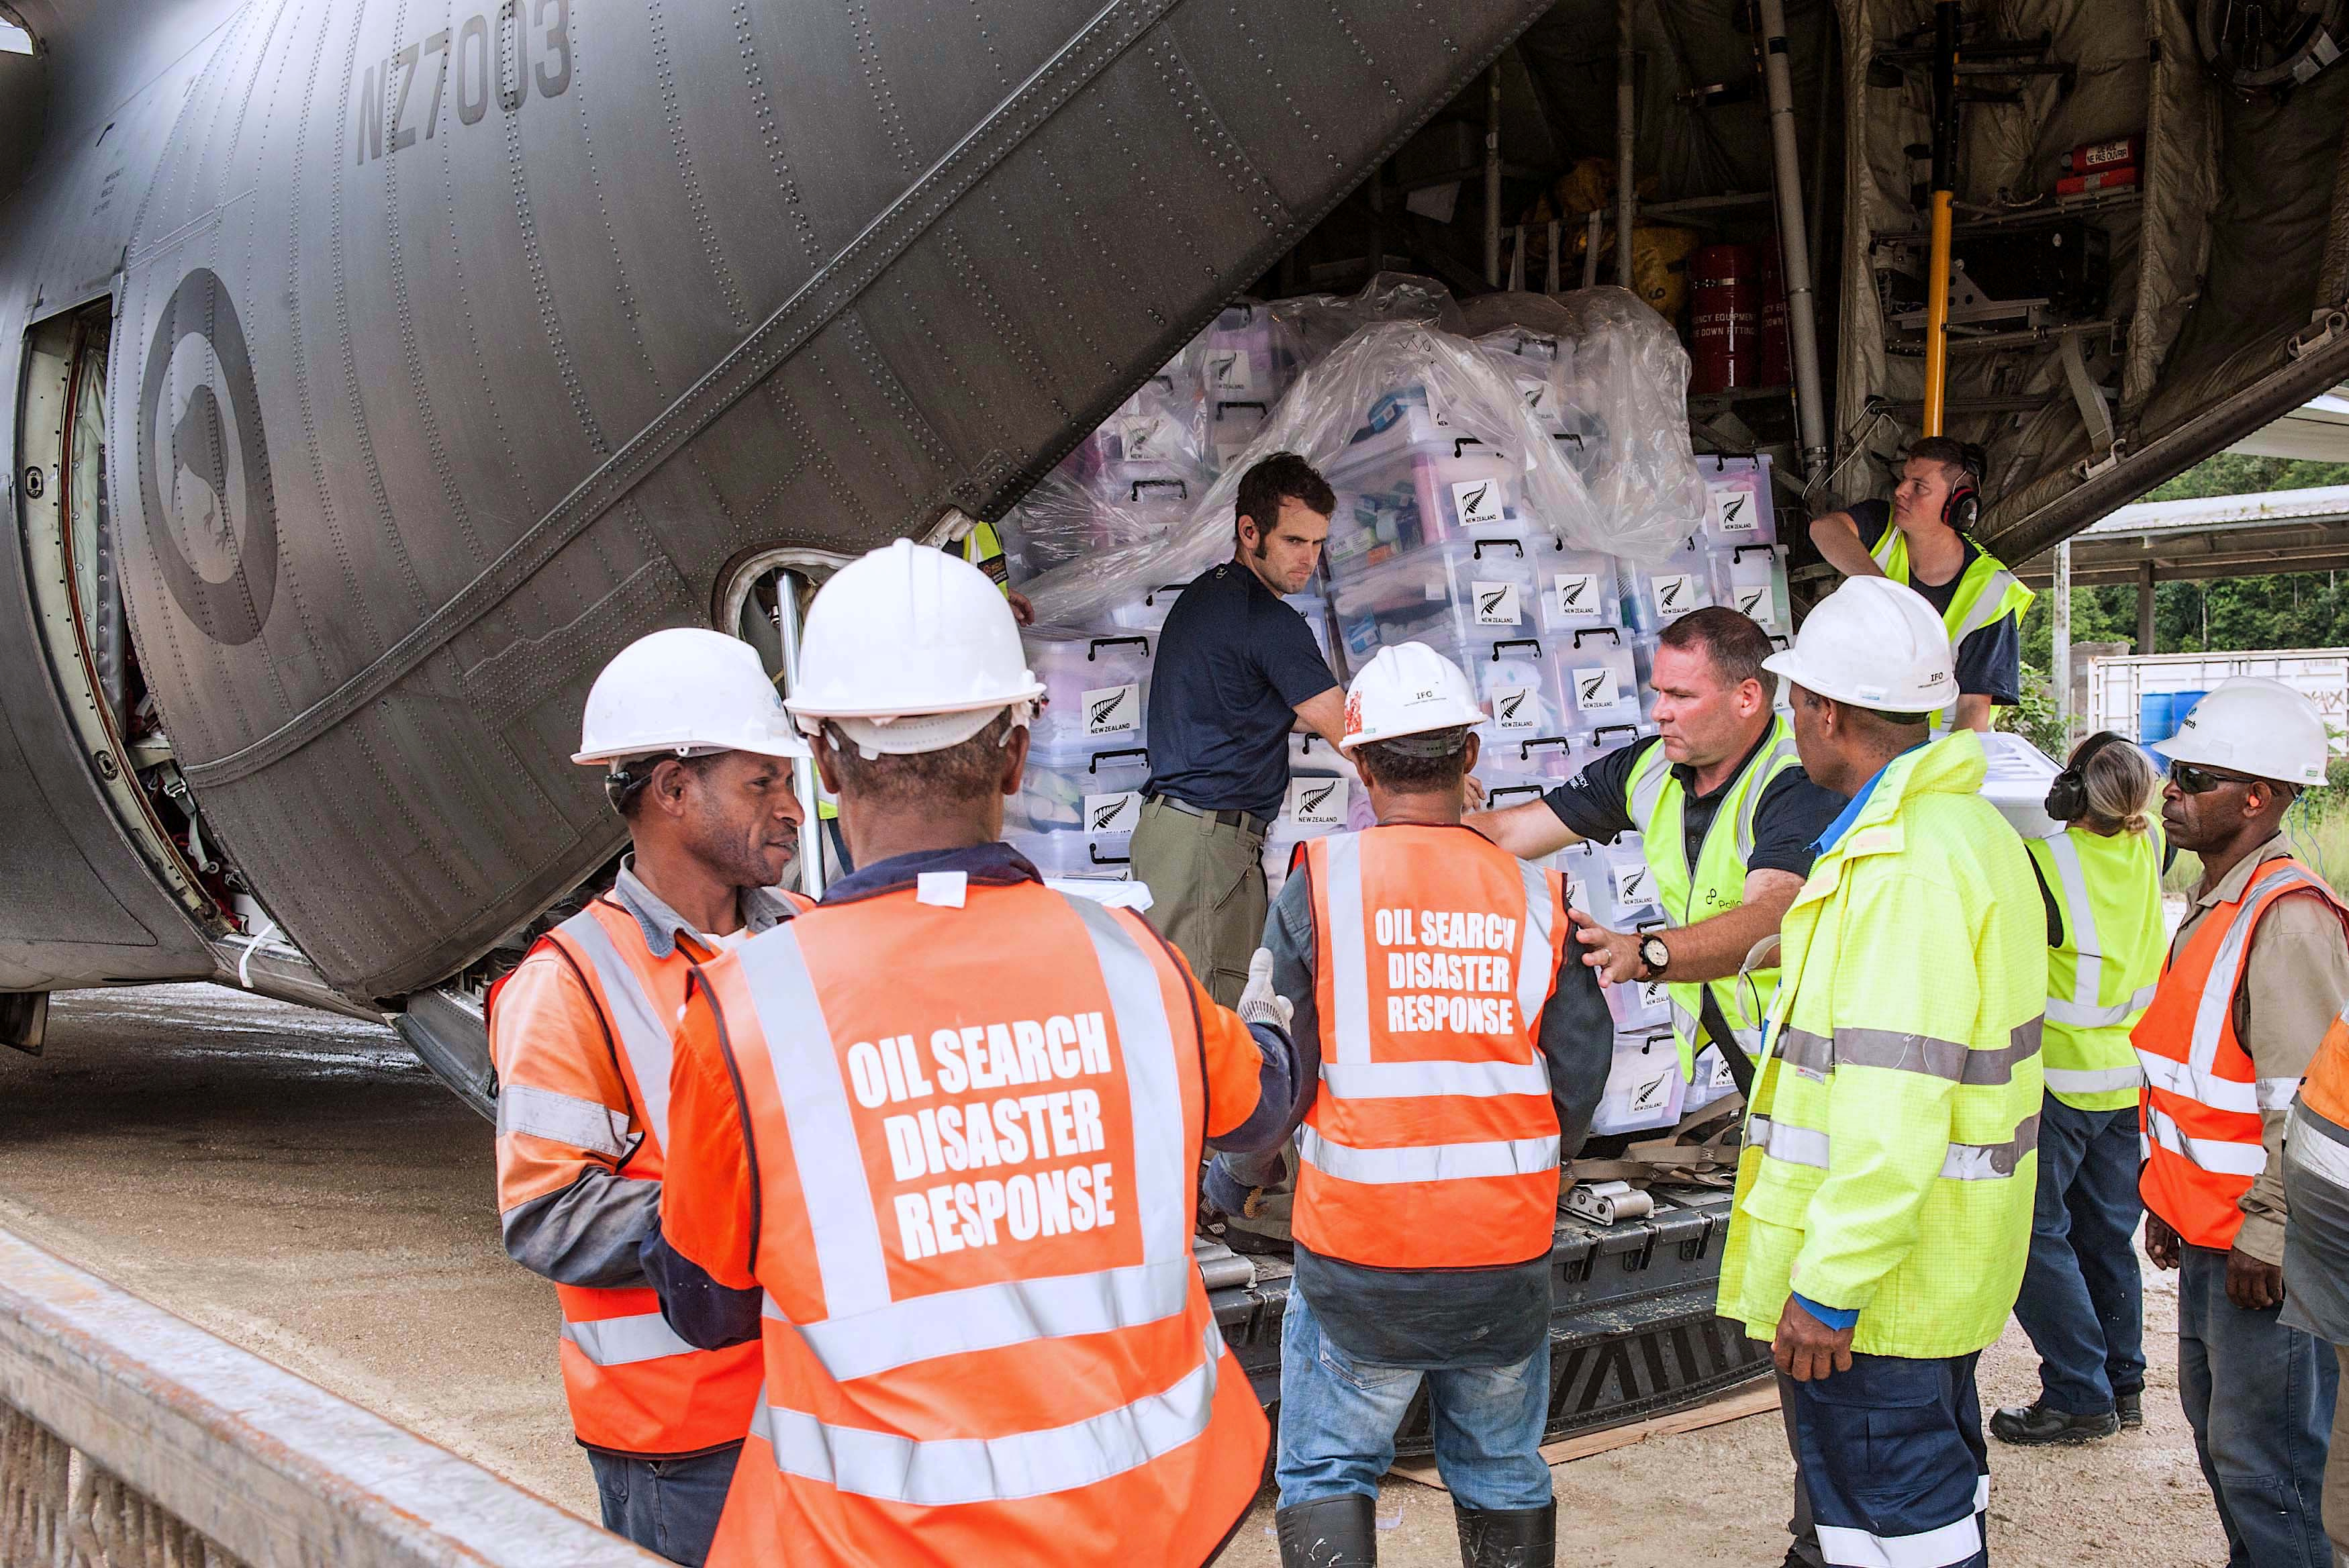 FILE - New Zealand Defense Force personnel unload aid supplies from a C-130 Hercules as part of emergency relief efforts after numerous earthquakes in the highlands region of Papua New Guinea, March 9, 2018.